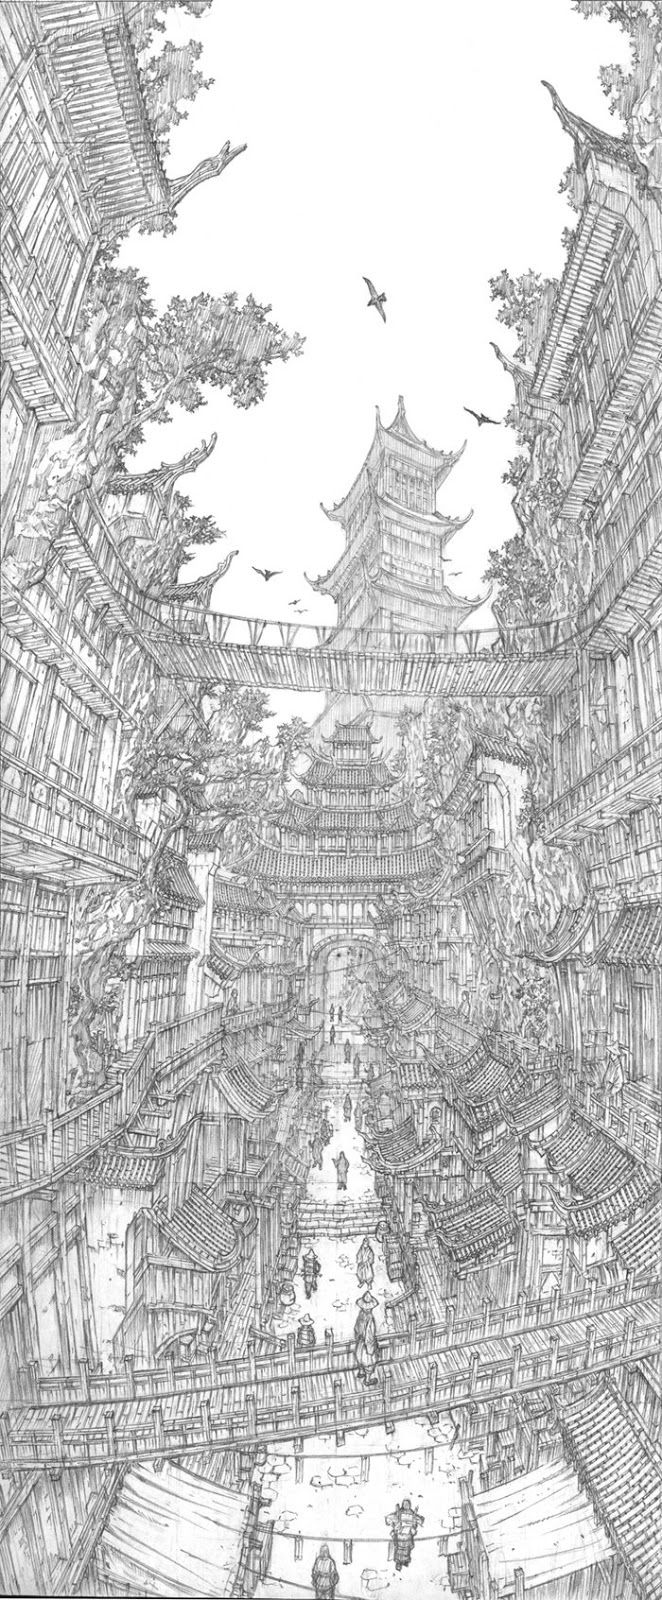 Architecture in Super Detailed Fantasy Drawings. See more art and information about Jung Min Seub, Press the Image.